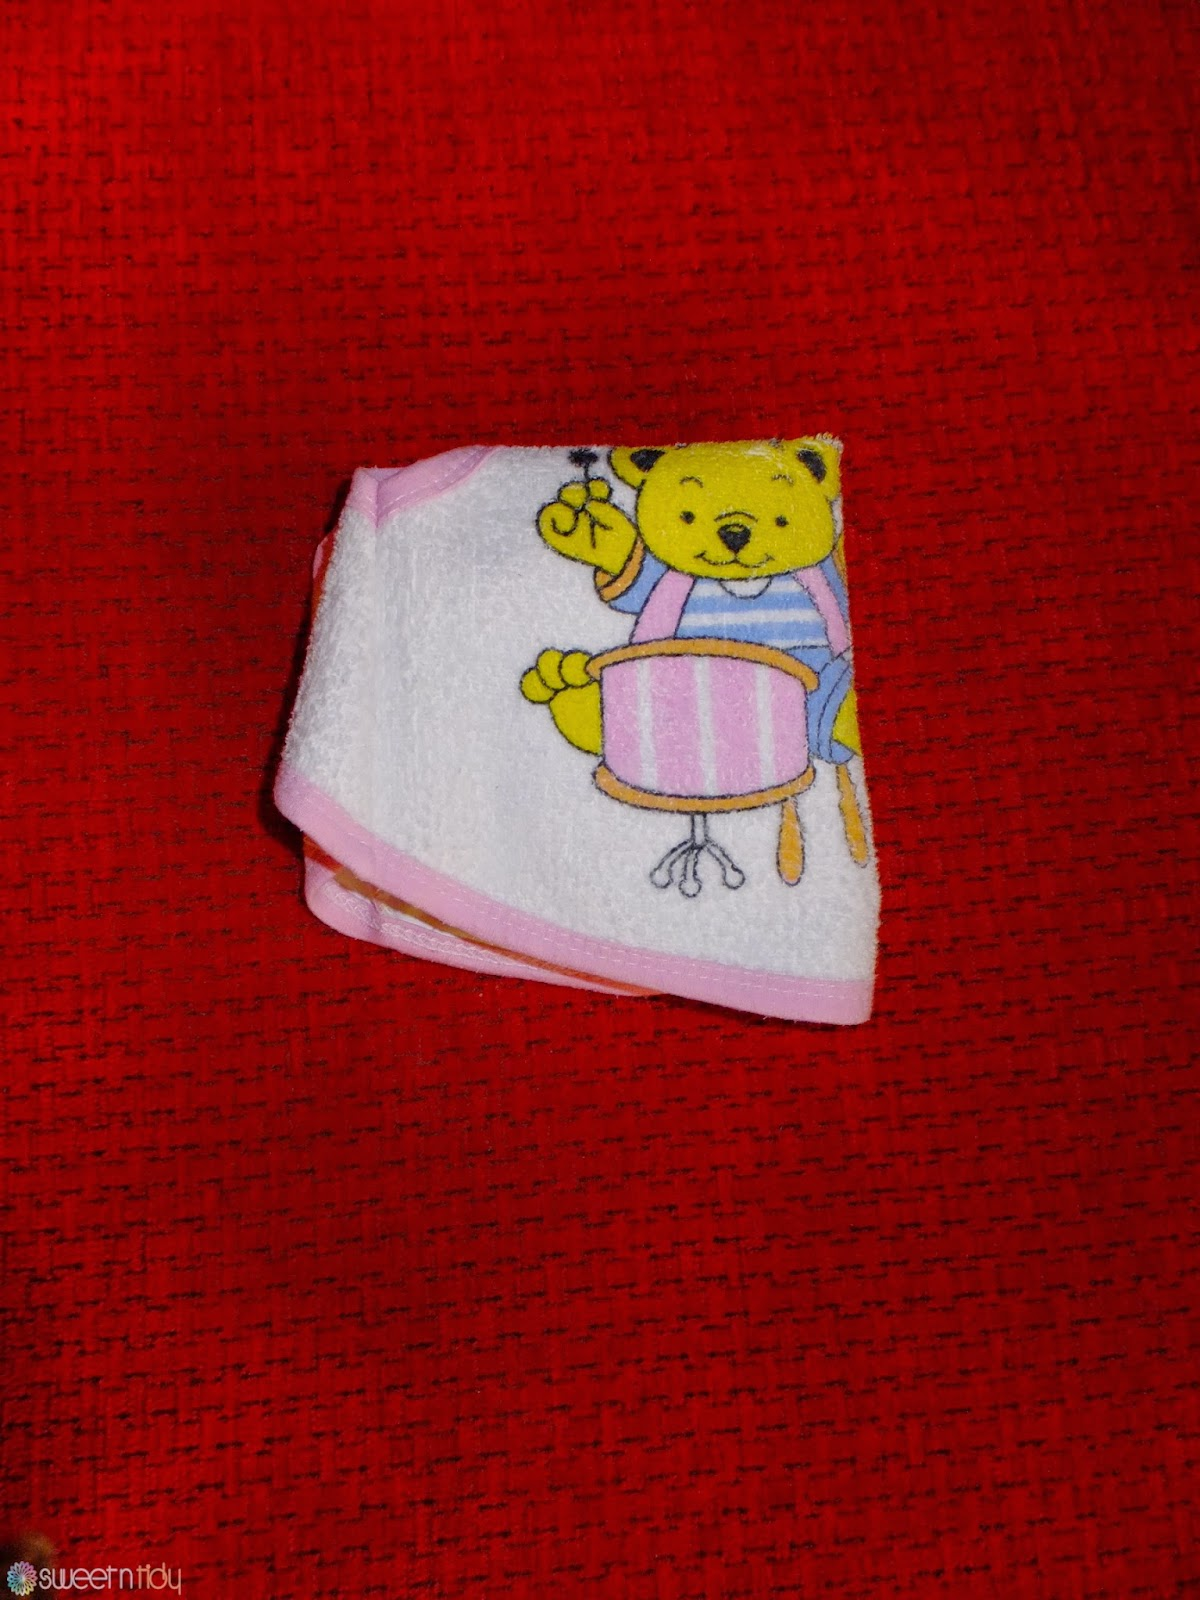 How to fold baby clothes